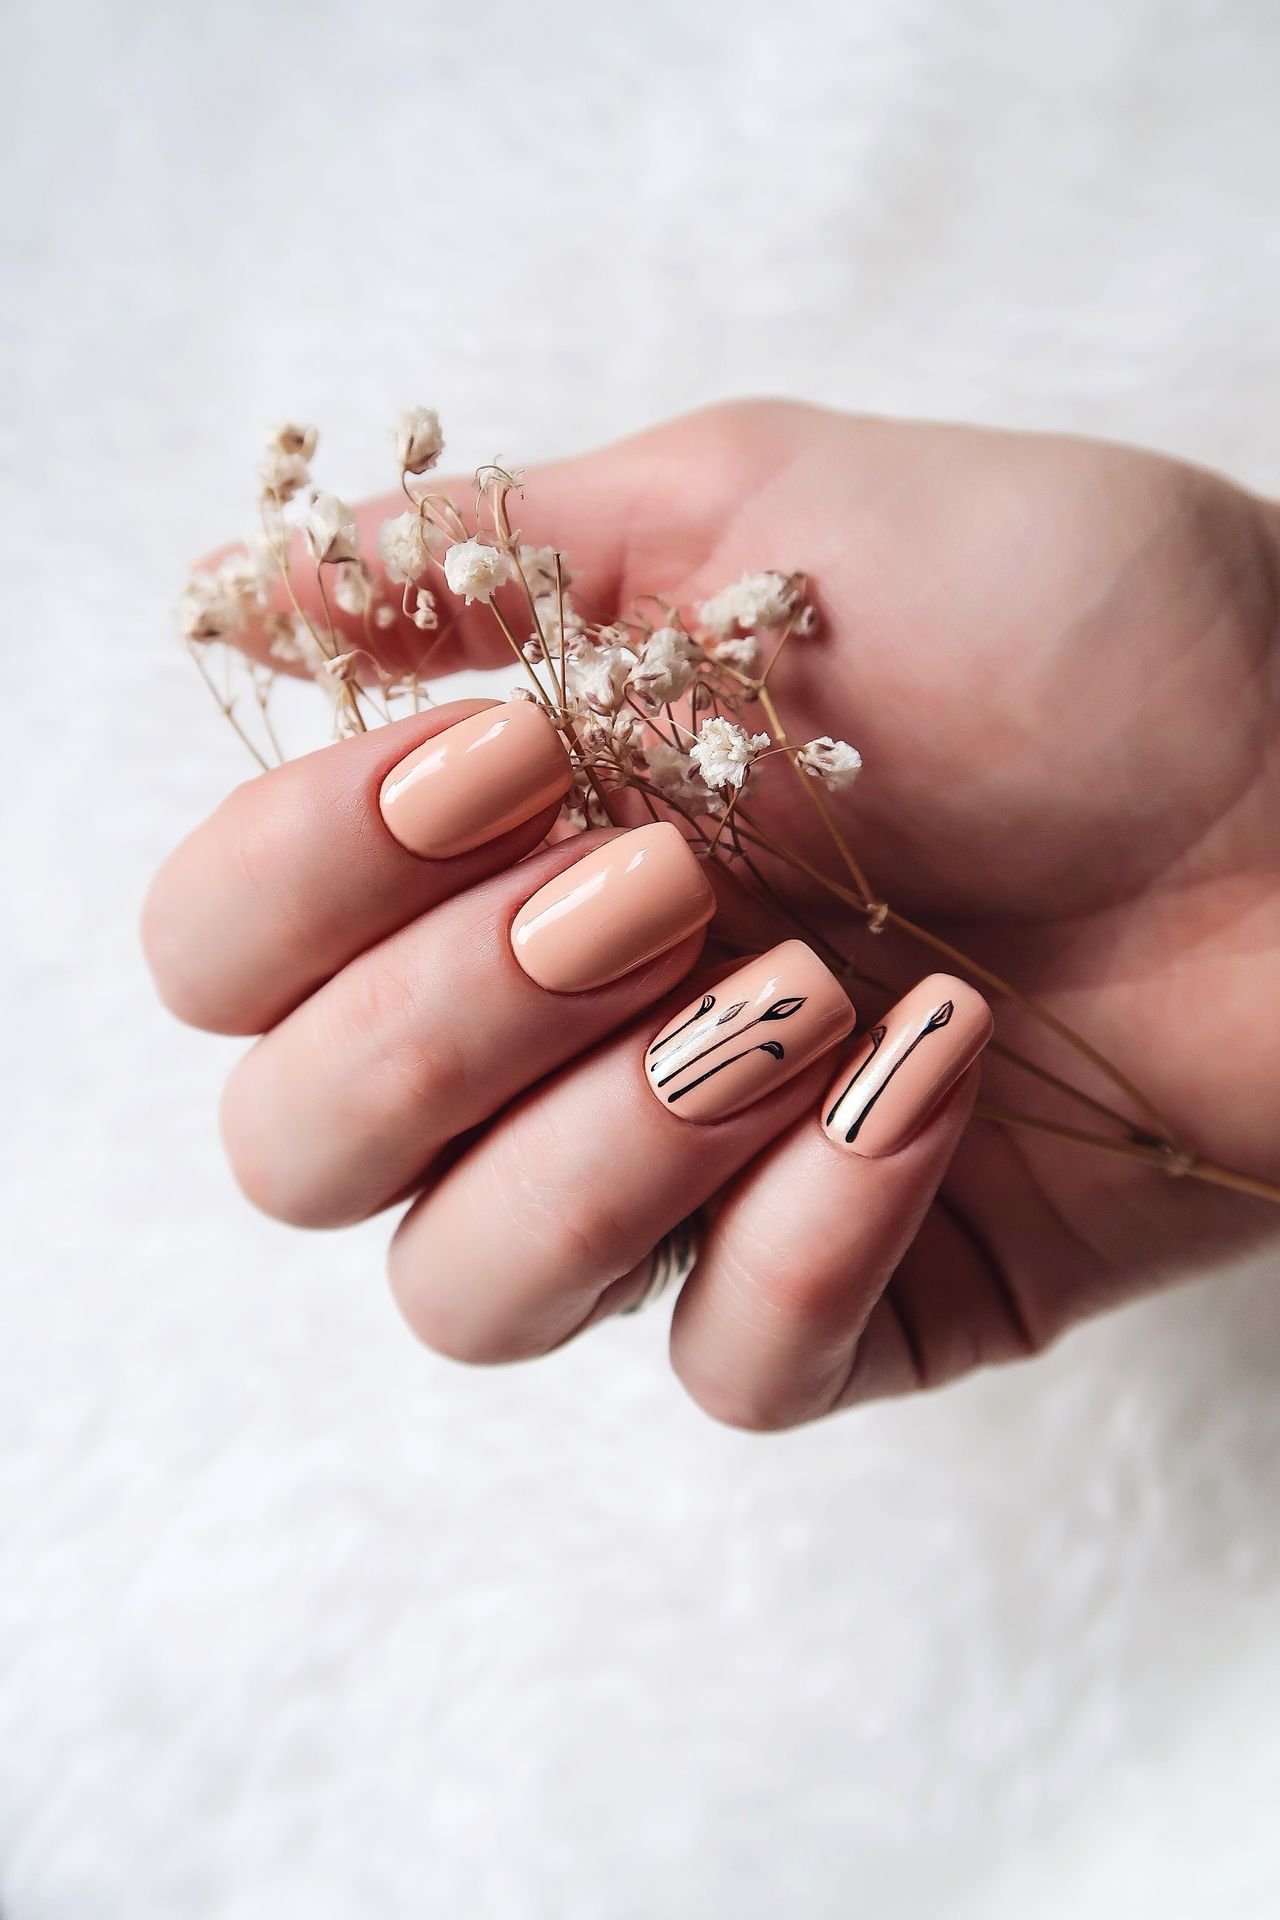 Beautiful stock photos of fashion, human hand, human body part, nail art, one person